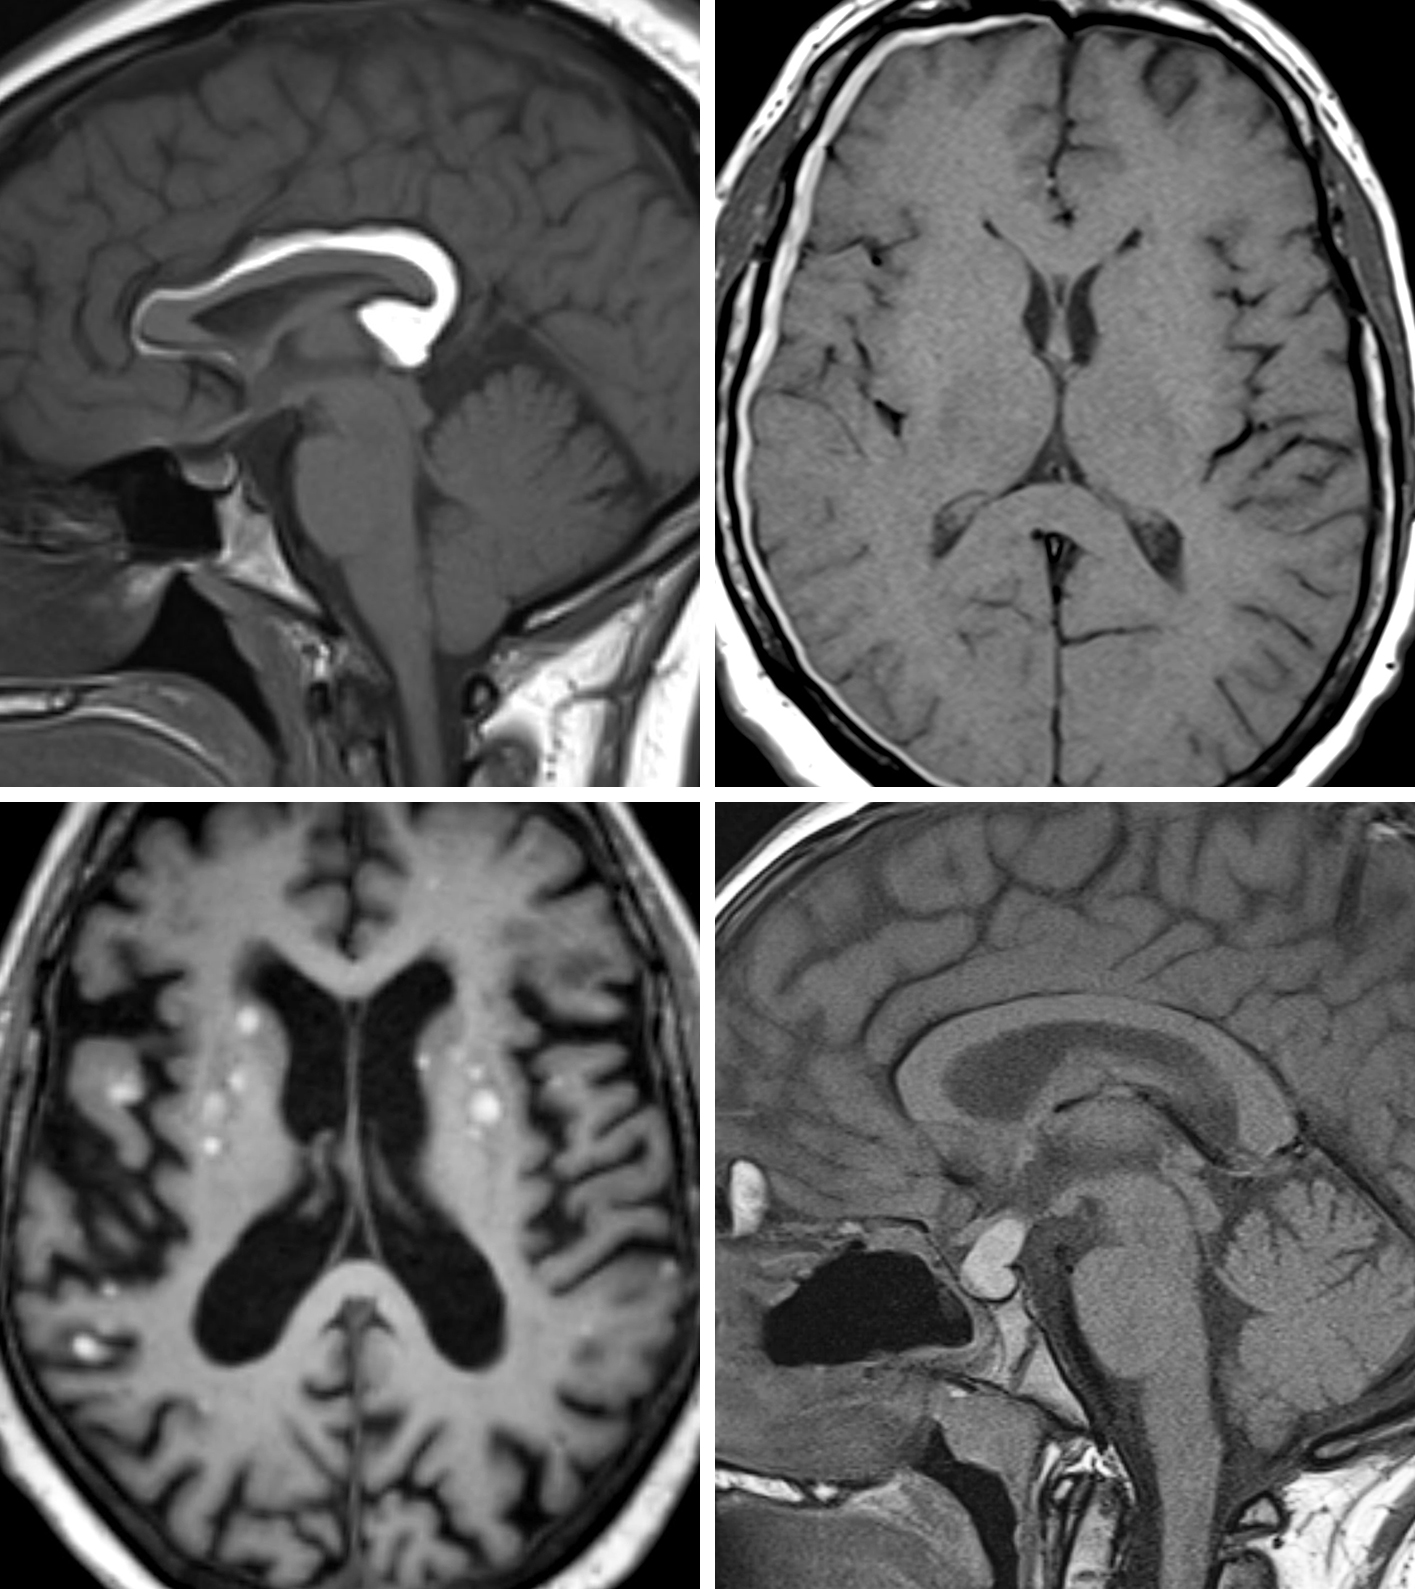 Figure 1: (Top Left) T1-weighted precontrast images demonstrate a T1 hyperintense mass (lipoma) involving the corpus callosum. (Top Right) T1-weighted precontrast images demonstrate a T1 hyperintense right-sided extra-axial collection compatible with early subacute subdural hematoma. (Bottom Left) T1-weighted precontrast images demonstrate multiple round T1 hyperintense lesions, a classic appearance for metastatic melanoma. (Bottom Right) T1-weighted precontrast image demonstrates a T1 hyperintense sellar lesion compatible with a proteinaceous Rathke cyst.